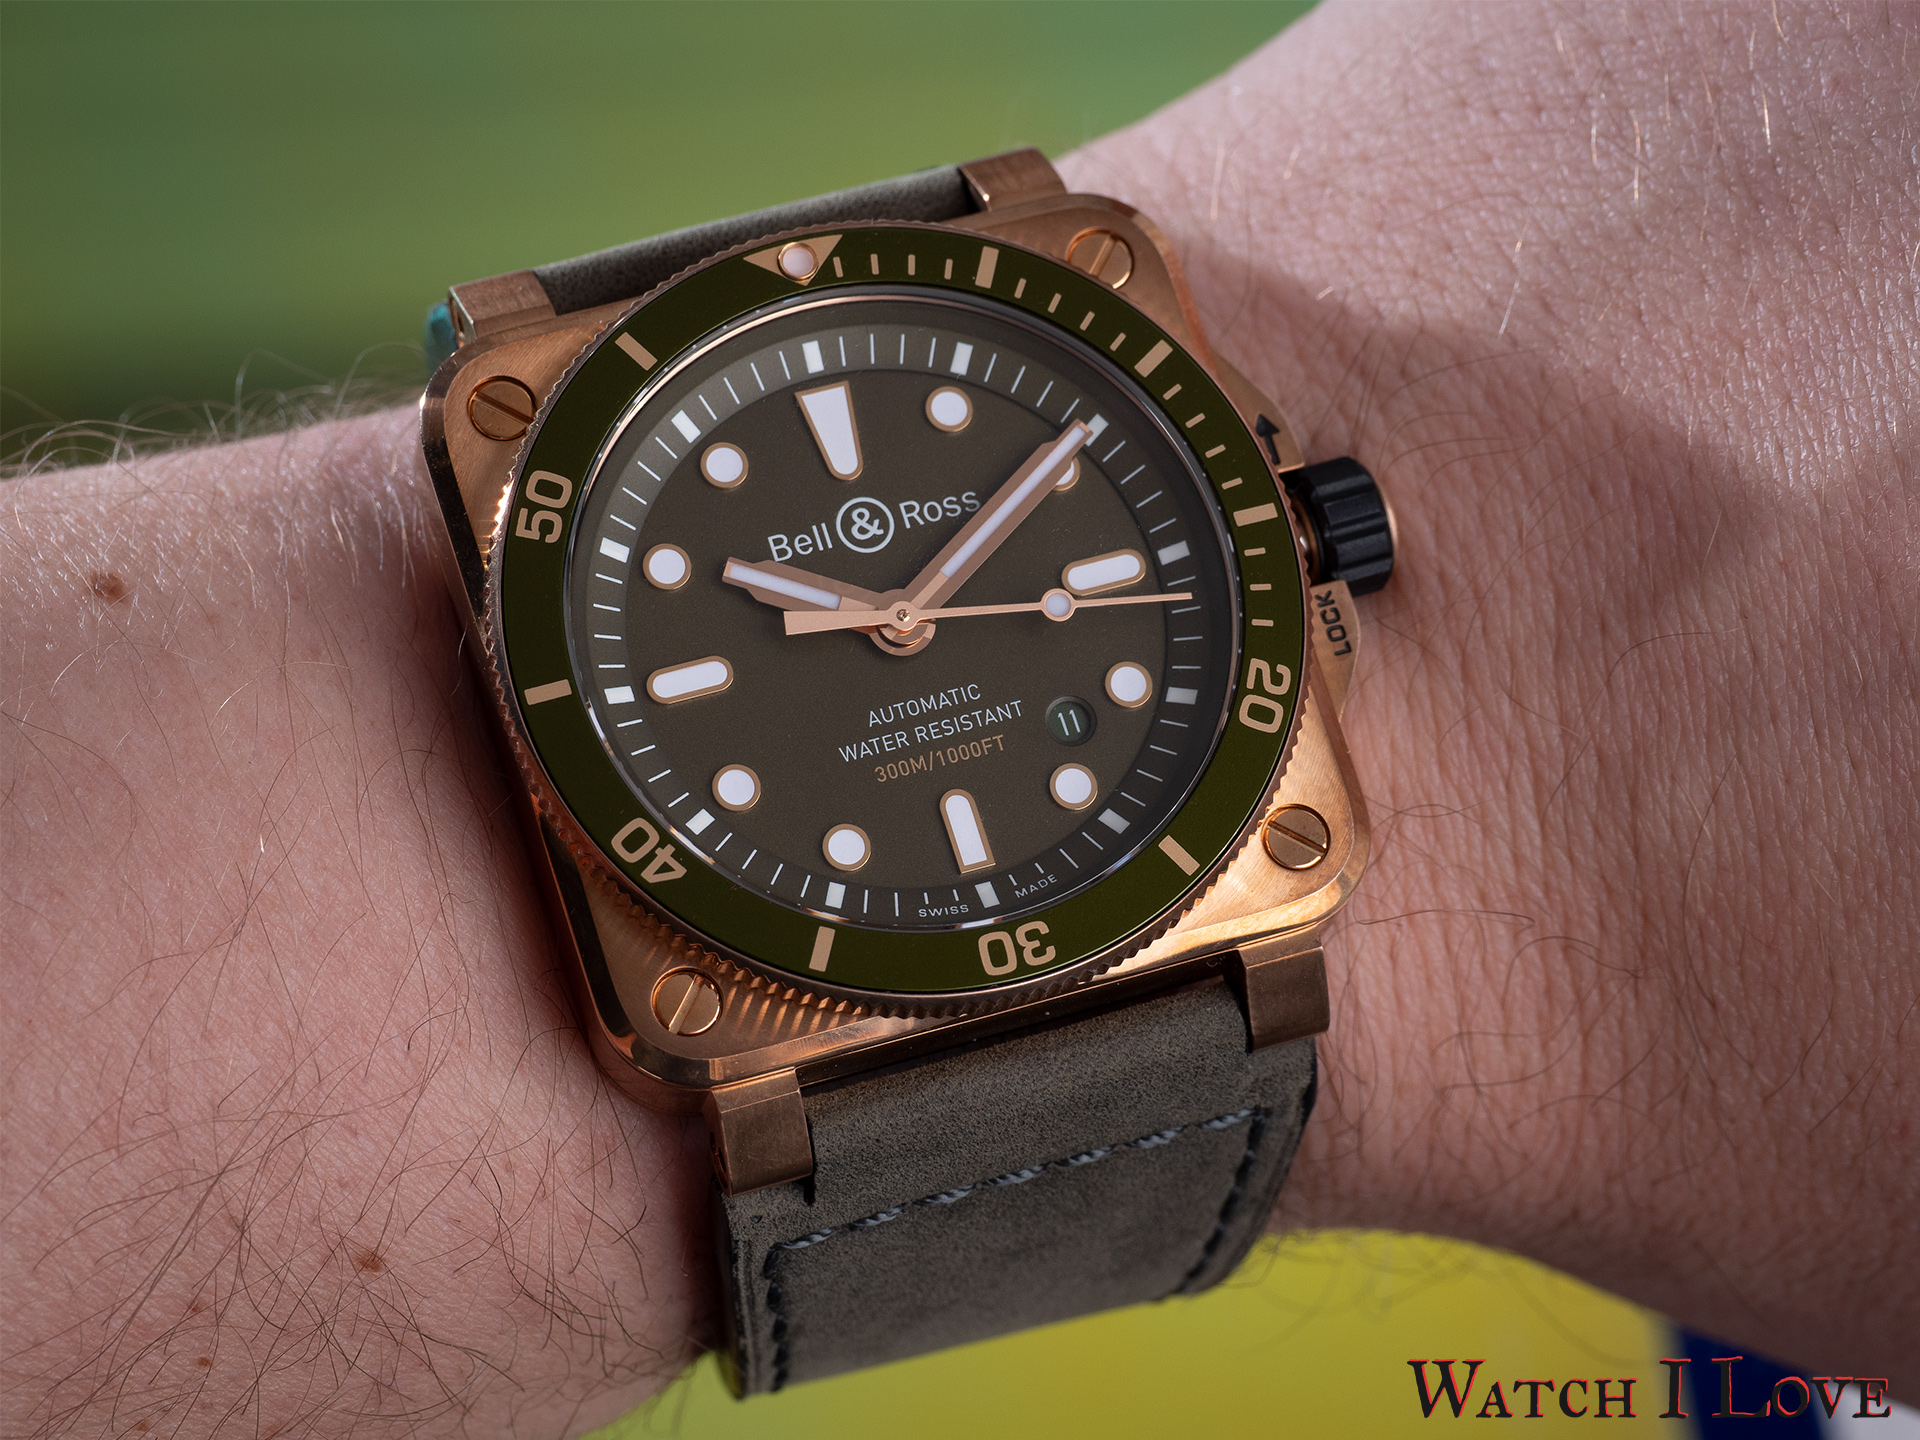 BR03-92 Green Bronze Diver on the wrist